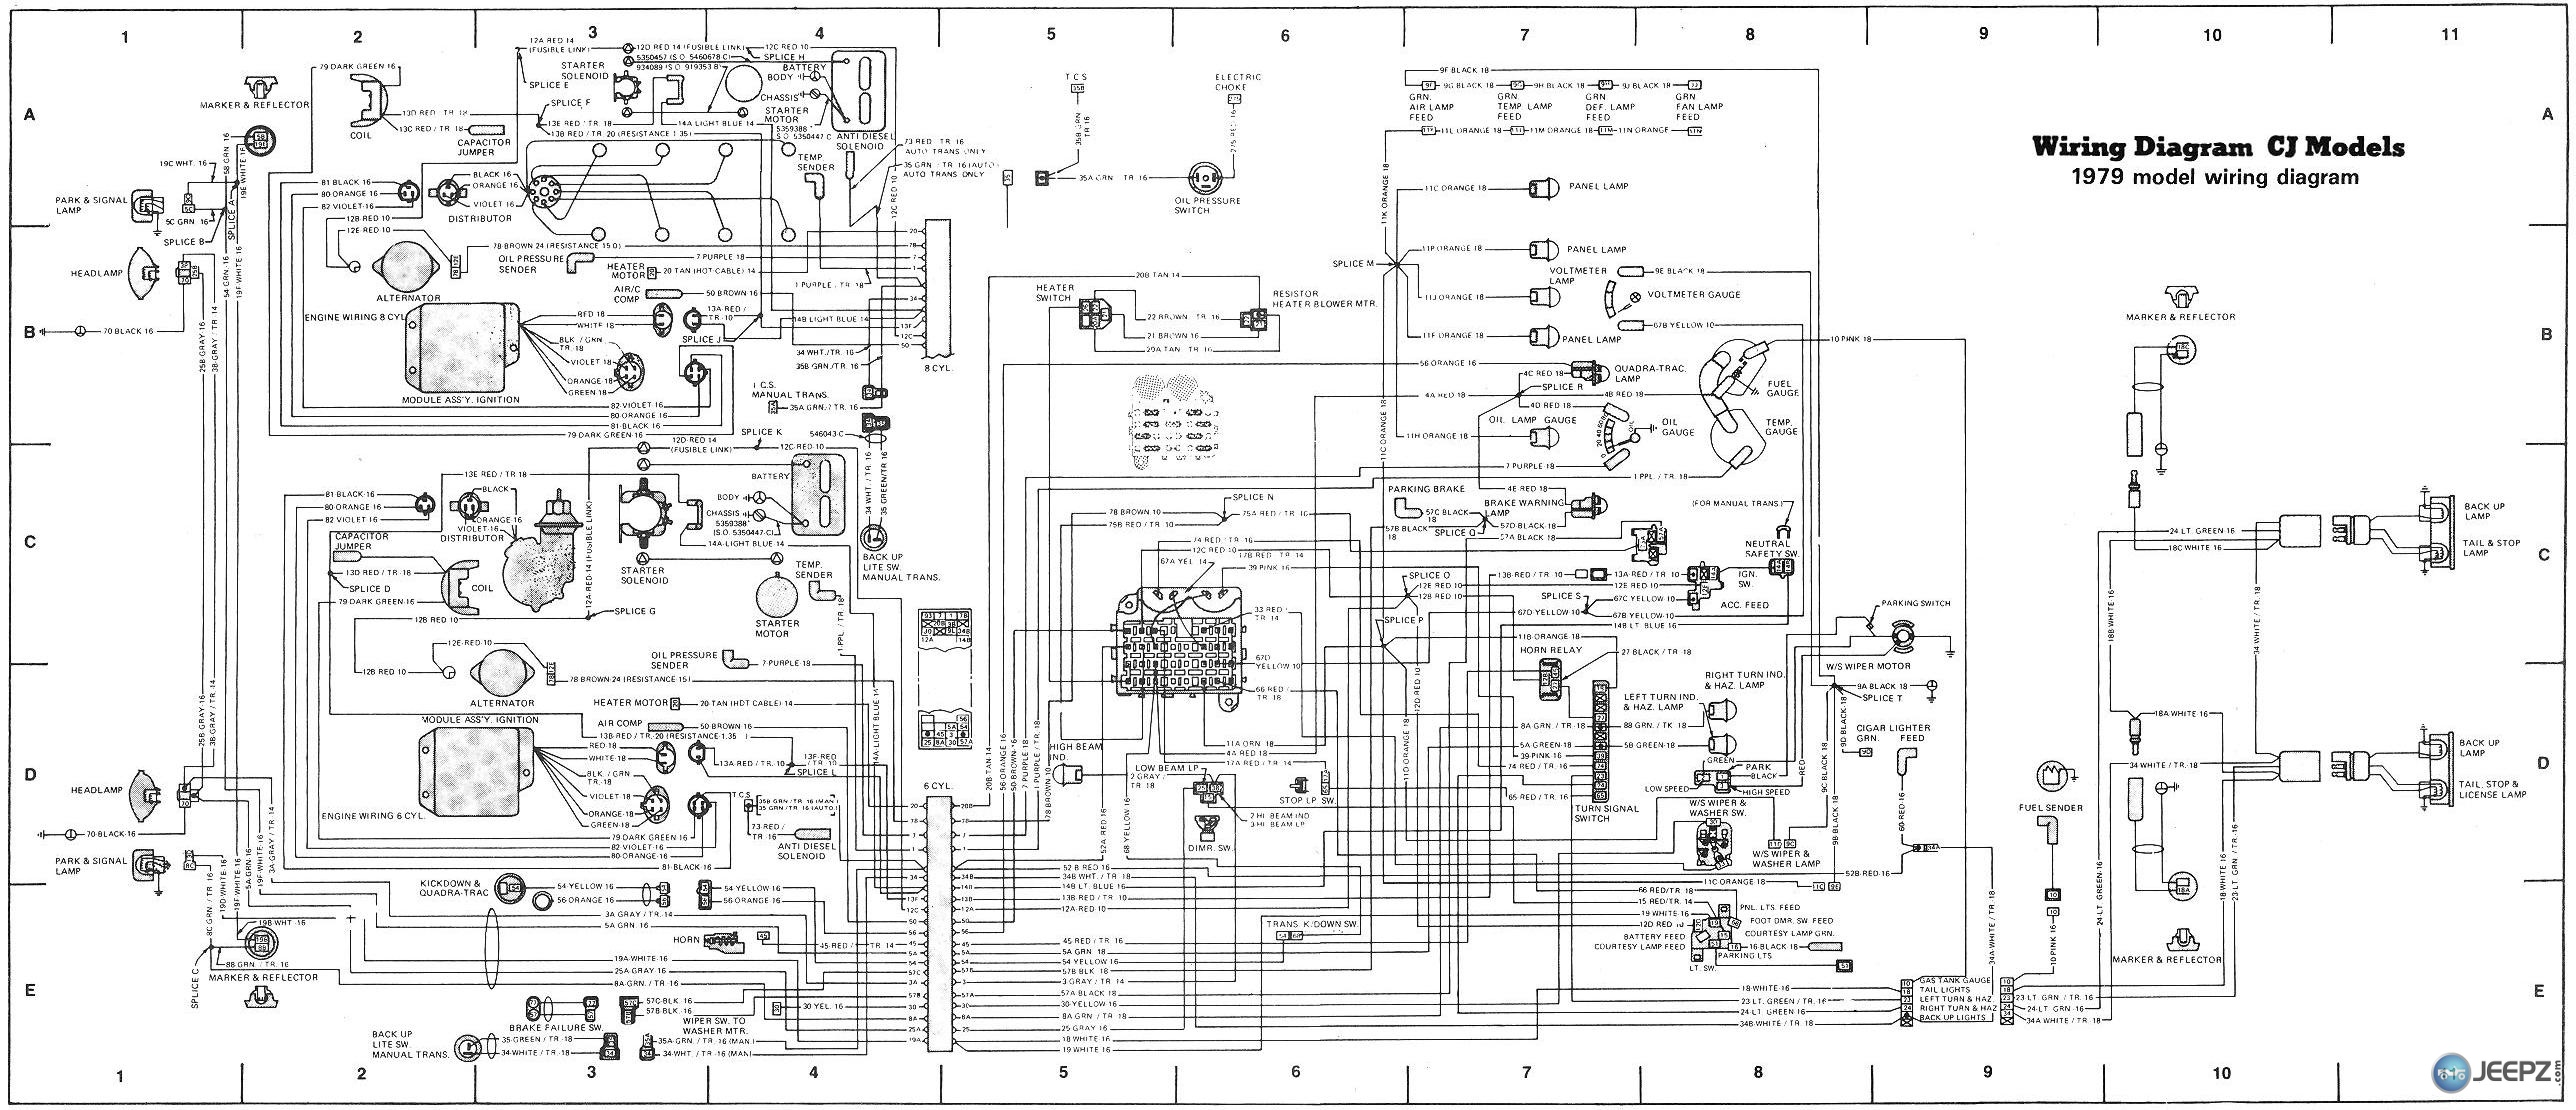 Colorful iveco wiring diagram photos best images for wiring iveco manuals pdf amp wiring diagrams 9 truck tractor inducedfo asfbconference2016 Images